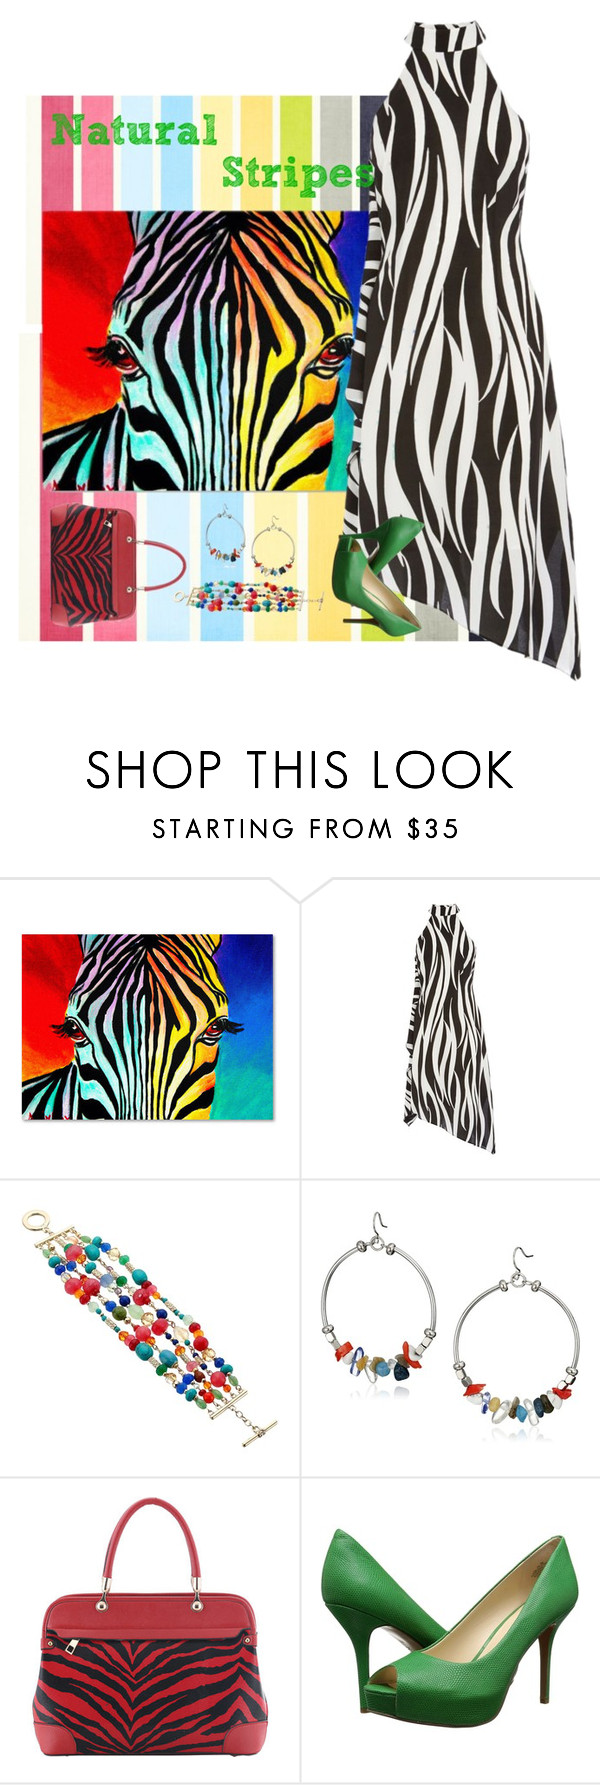 """Natural Stripes"" by kbarkstyle ❤ liked on Polyvore featuring Trademark Fine Art, Karen Millen, Lauren Ralph Lauren, Kenneth Cole, SWG and Nine West"